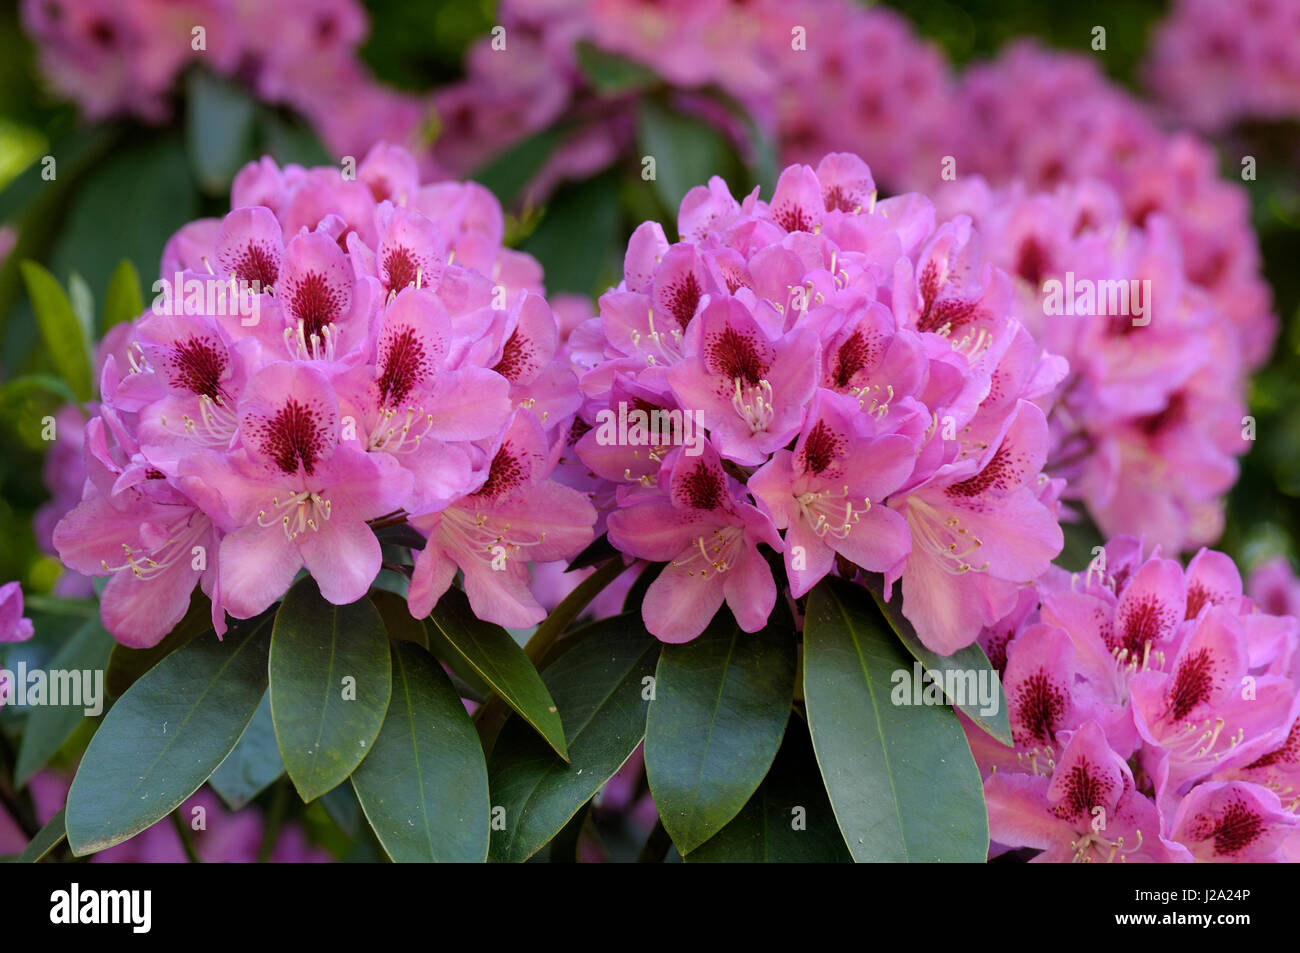 Rhododendron in flower - Stock Image